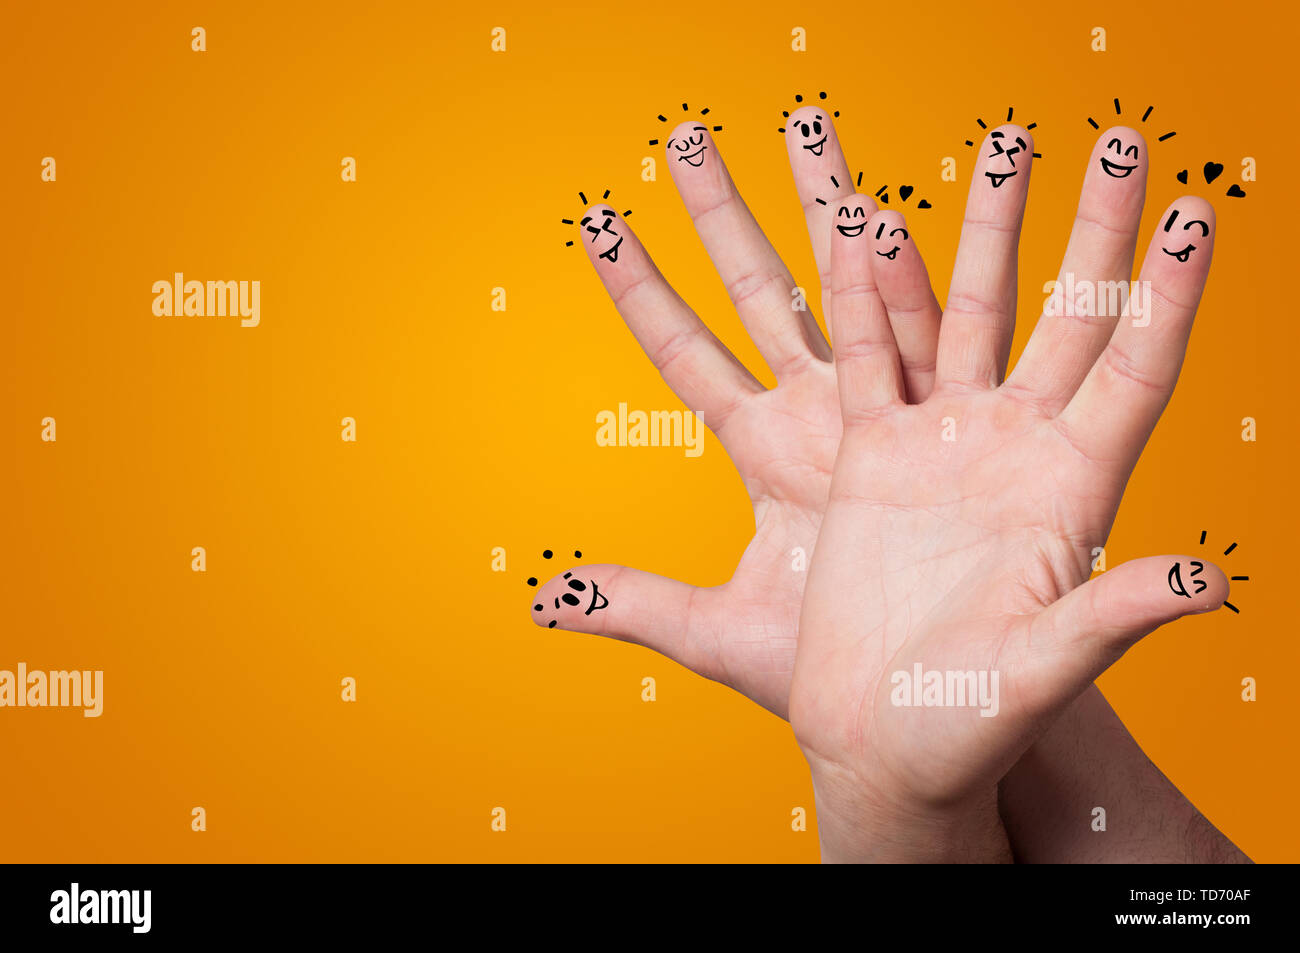 Waggish happy fingers with team building concept - Stock Image